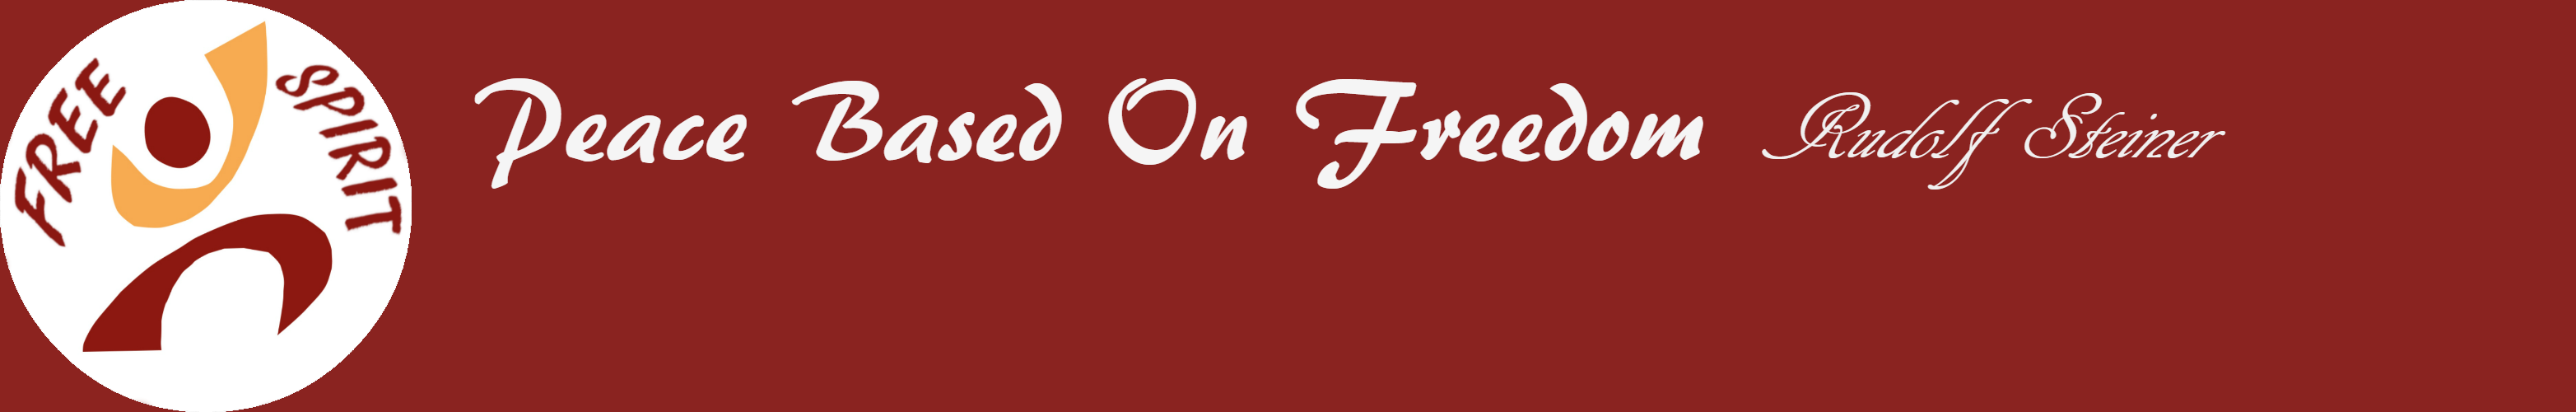 The Philosophy Of Freedom Logo